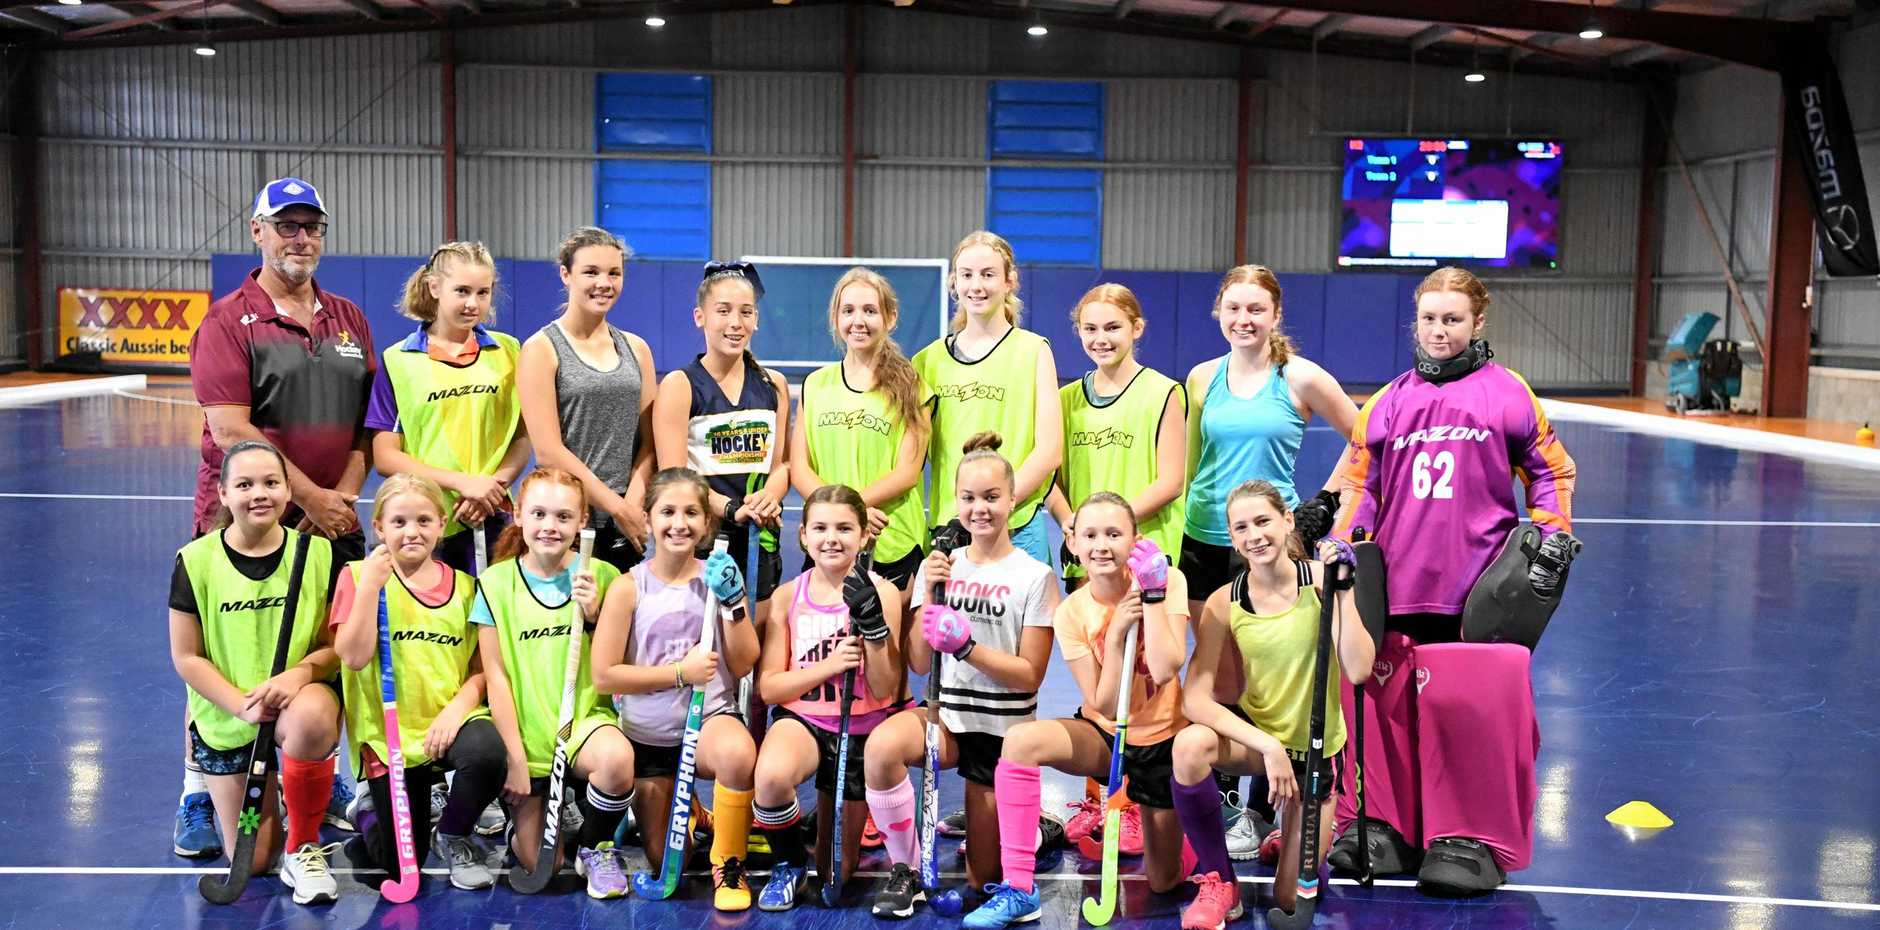 STATE OF ART: U13 and U15 Maryborough Indoor Hockey Girls Squads were trying out the new purpose built complex. Front: Jade Harris, Jemma Scougall, Matilda Harrison, Talia Hill, Keira McDonnell, Rhianna Campbell, Holly Lovelocl and Georgia Mitchell.Back: Coach Shane Palmer, Sierra Pursey, Laura Davies, Annelyse Tevant, Vada Thaggard, Andie Staples, Ava McDonnell, Ella McMahon and Kirralee McCulloch.